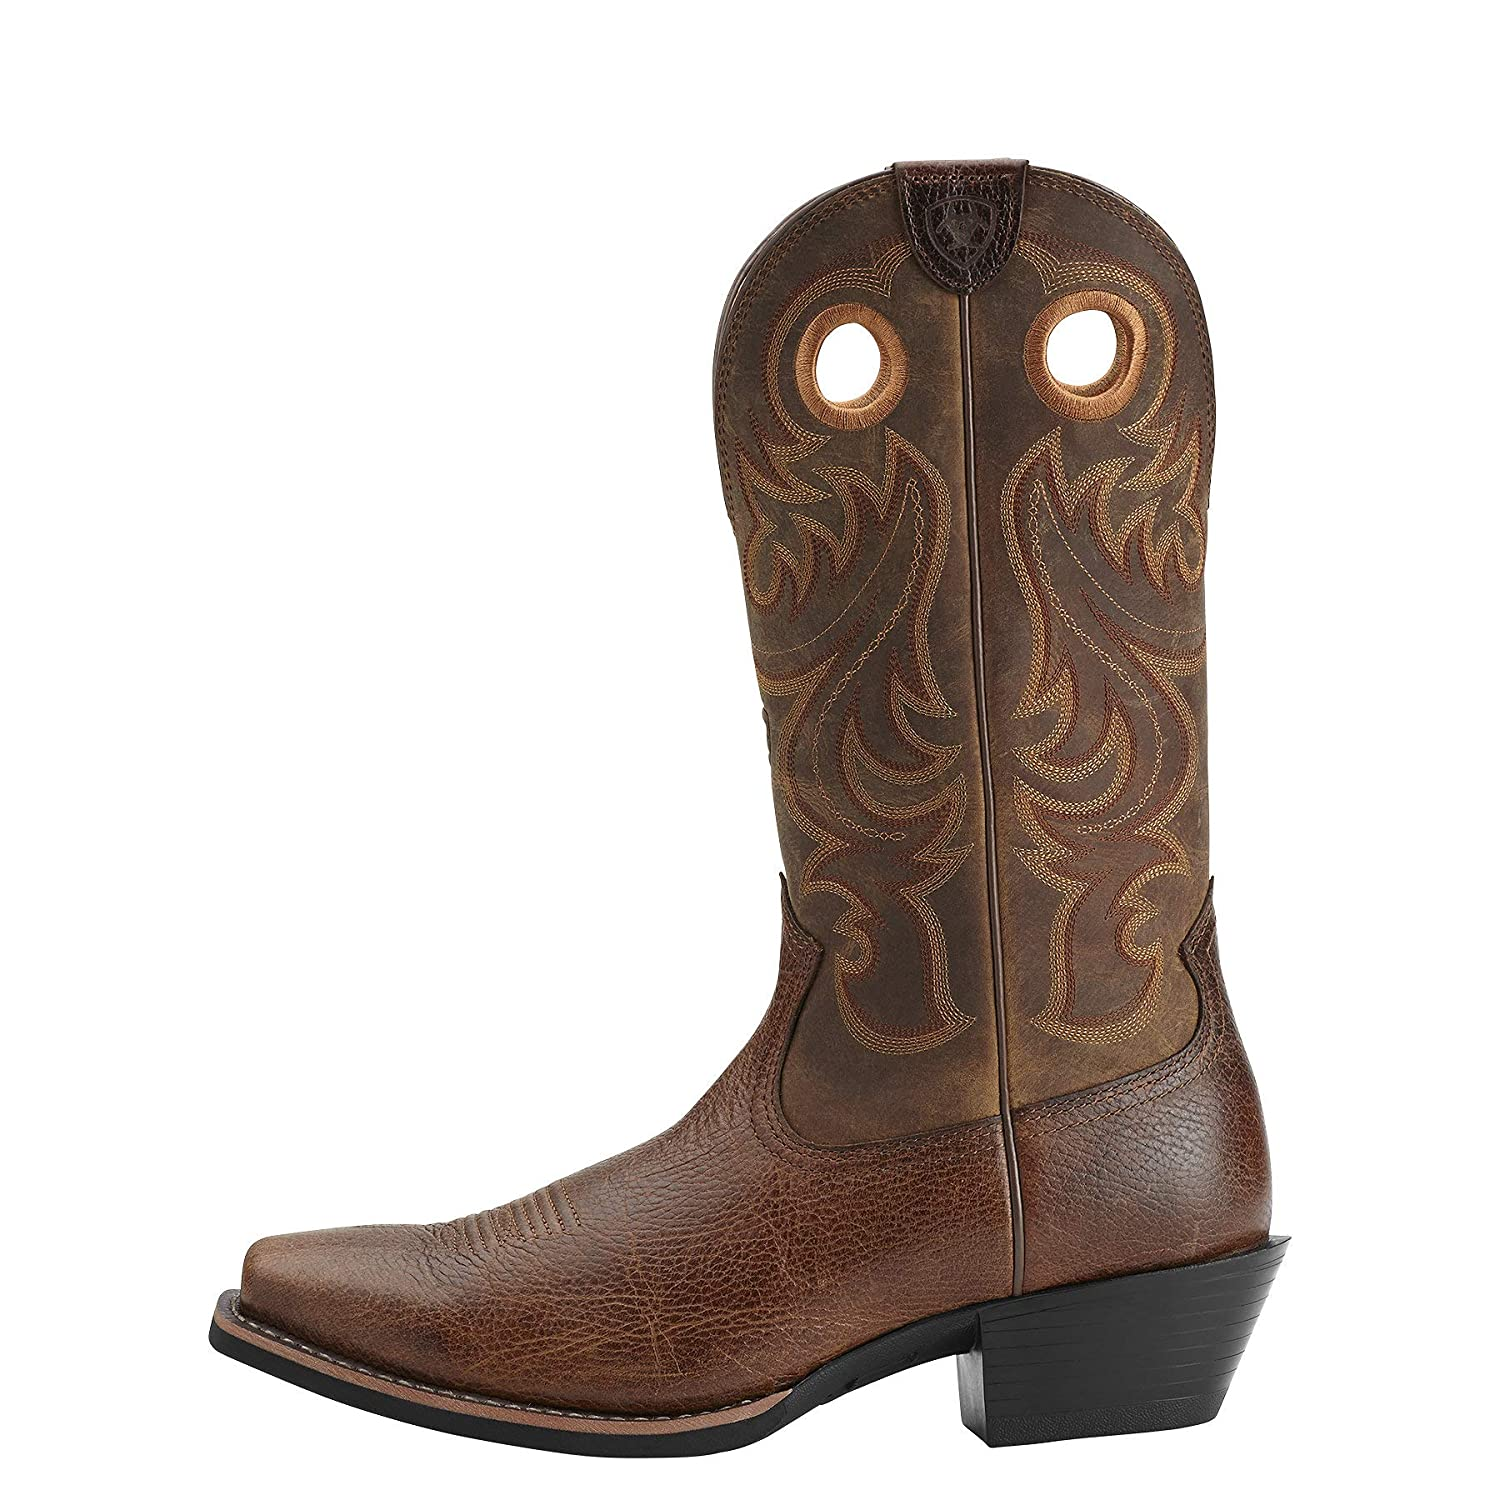 031ca953a7a Ariat Men's Sport Square Toe Western Cowboy Boot